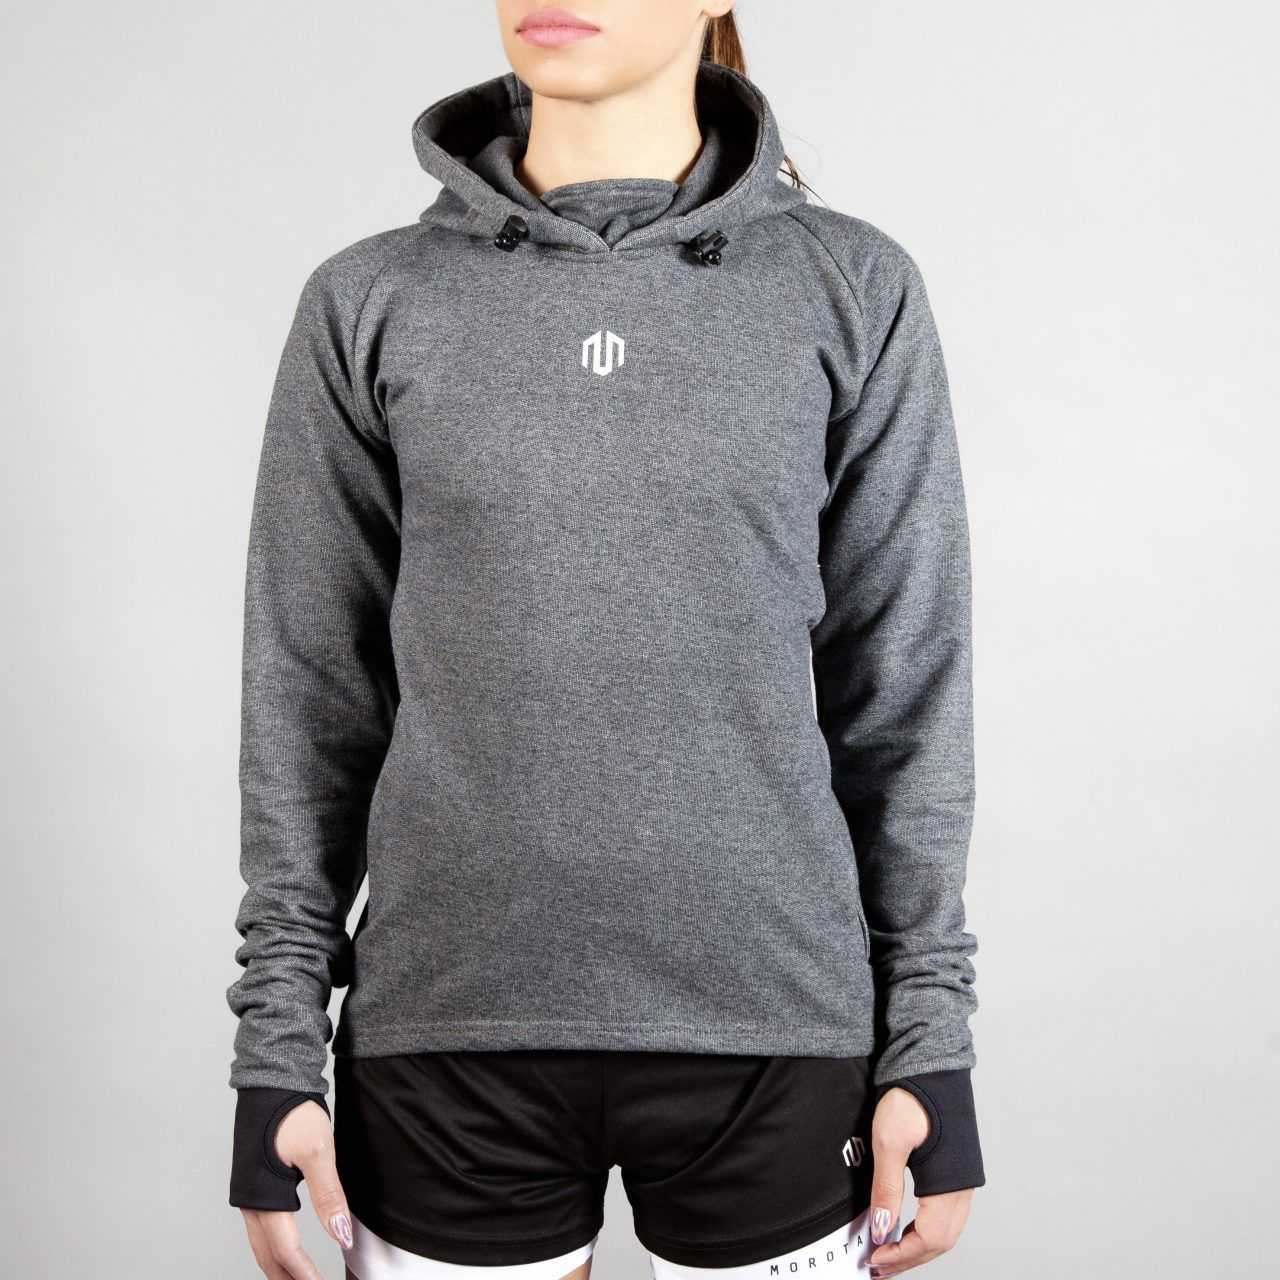 NAKA Comfy Performance Hoodie Grey #grey #hoodie #fashion #gym # fitness #gymwear #fitnesswear #gymclothes #womenswear #sporty #sport #sportswear